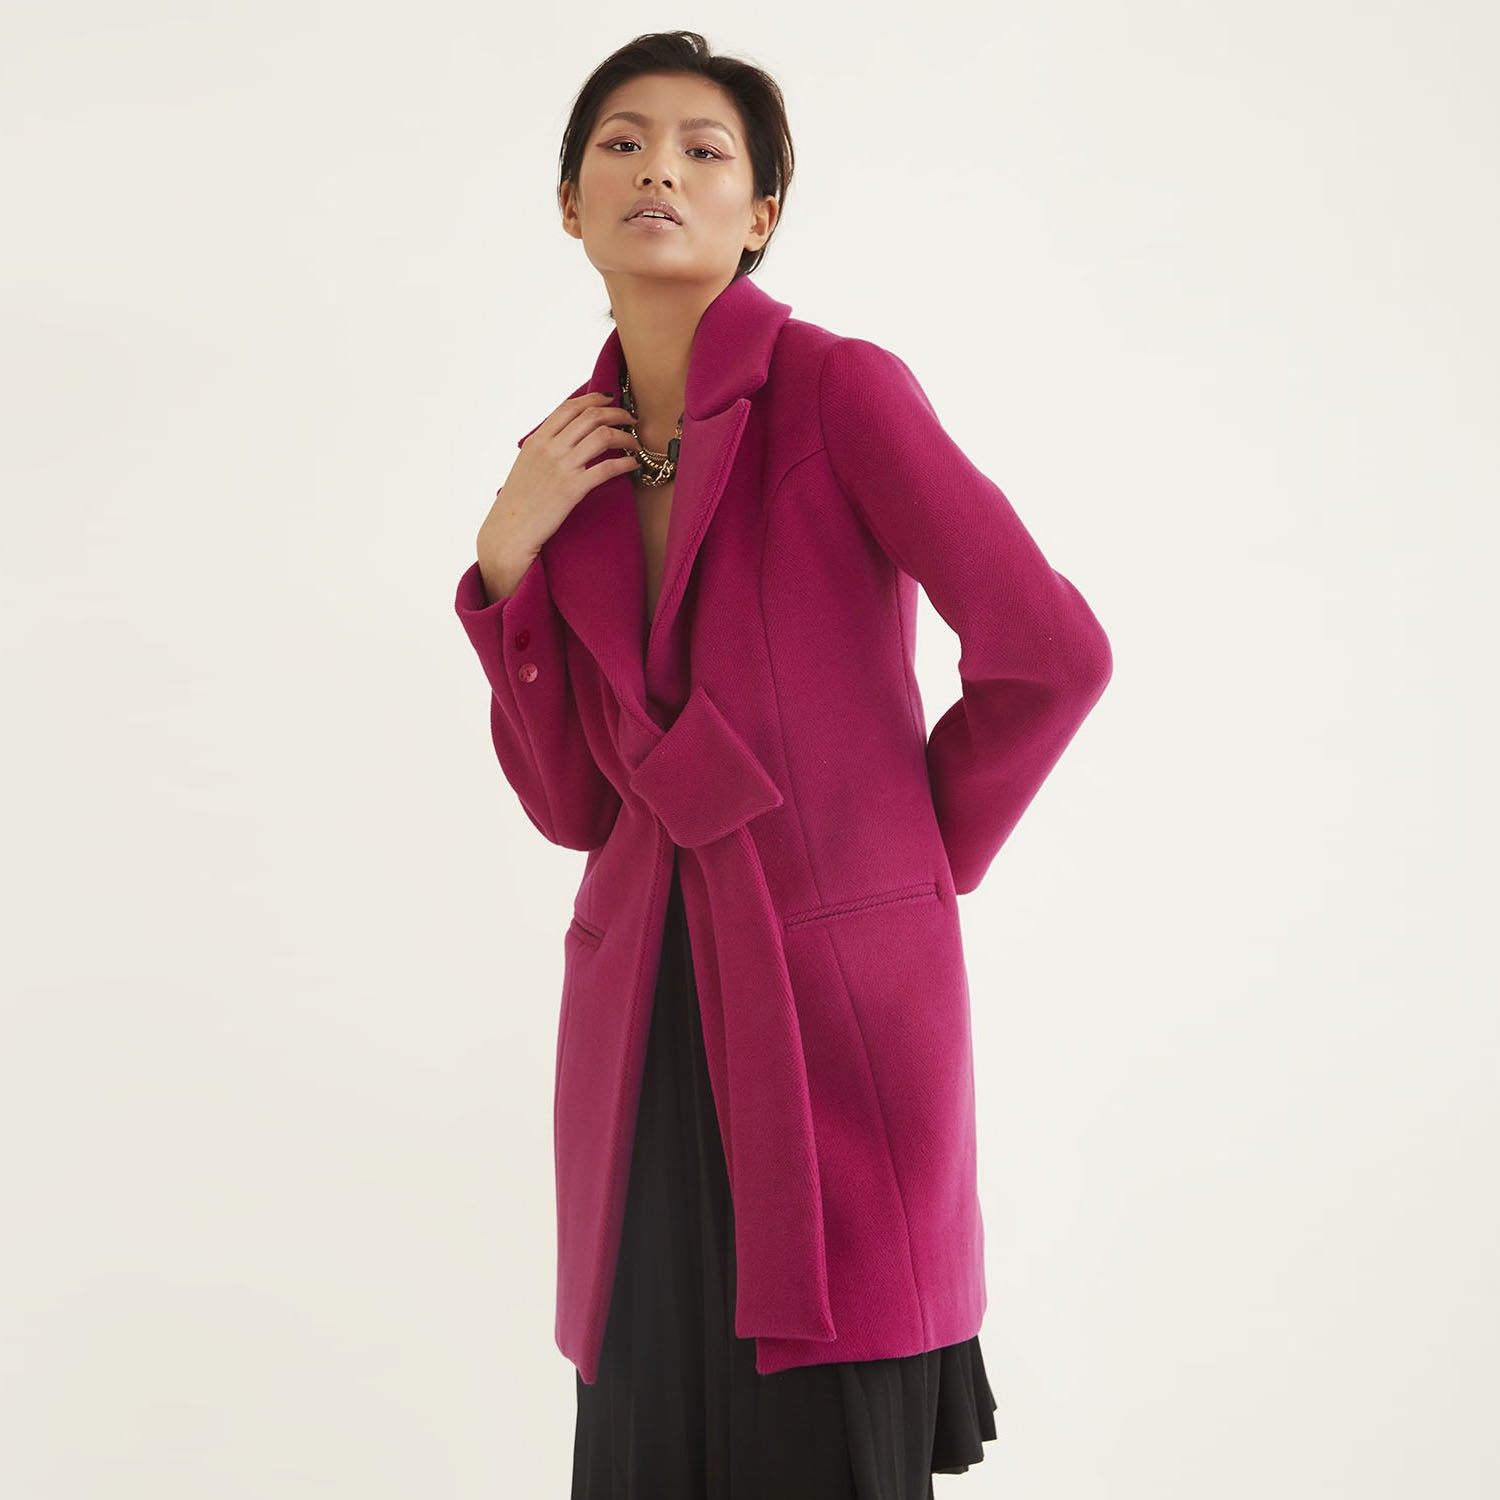 Single breasted belted coat |  Fanati-sta